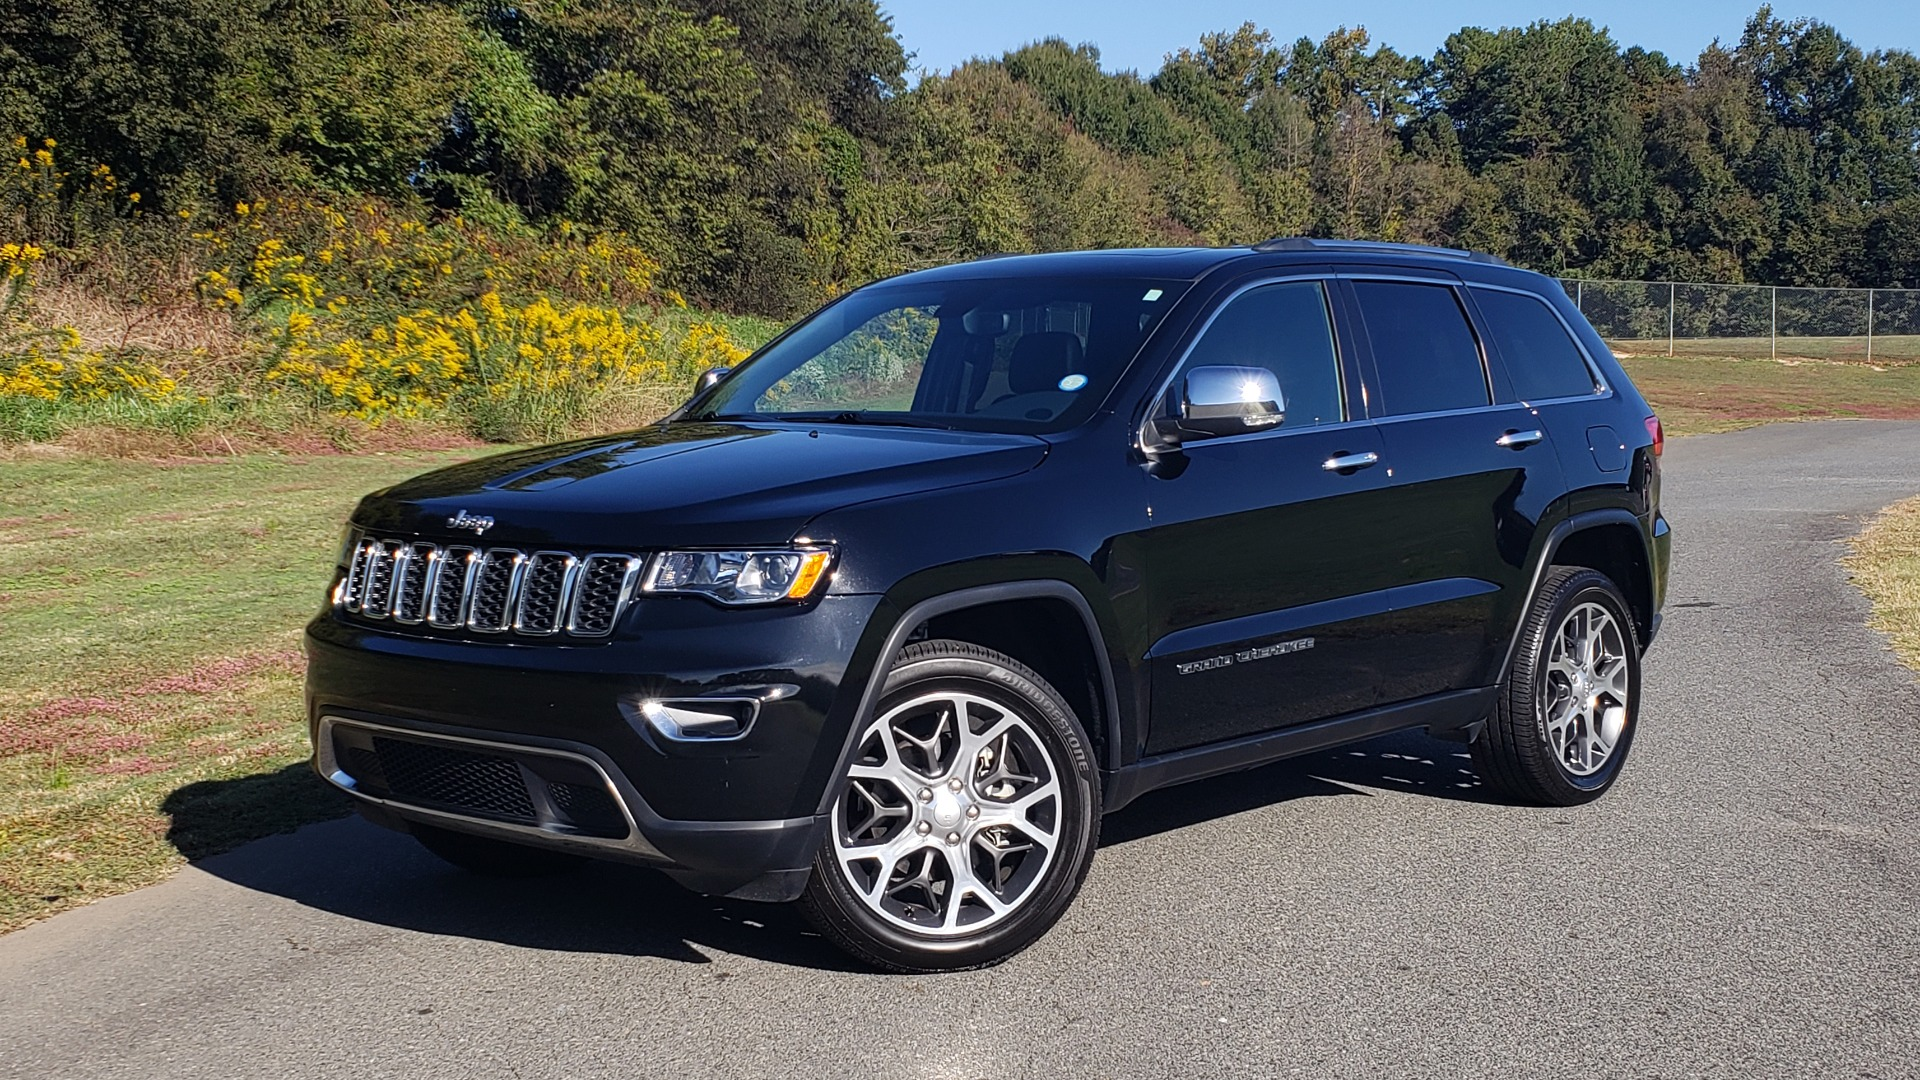 Used 2019 Jeep GRAND CHEROKEE LIMITED 4X4 / NAV / SUNROOF / BLIND SPOT MONITOR / REARVIEW for sale Sold at Formula Imports in Charlotte NC 28227 1